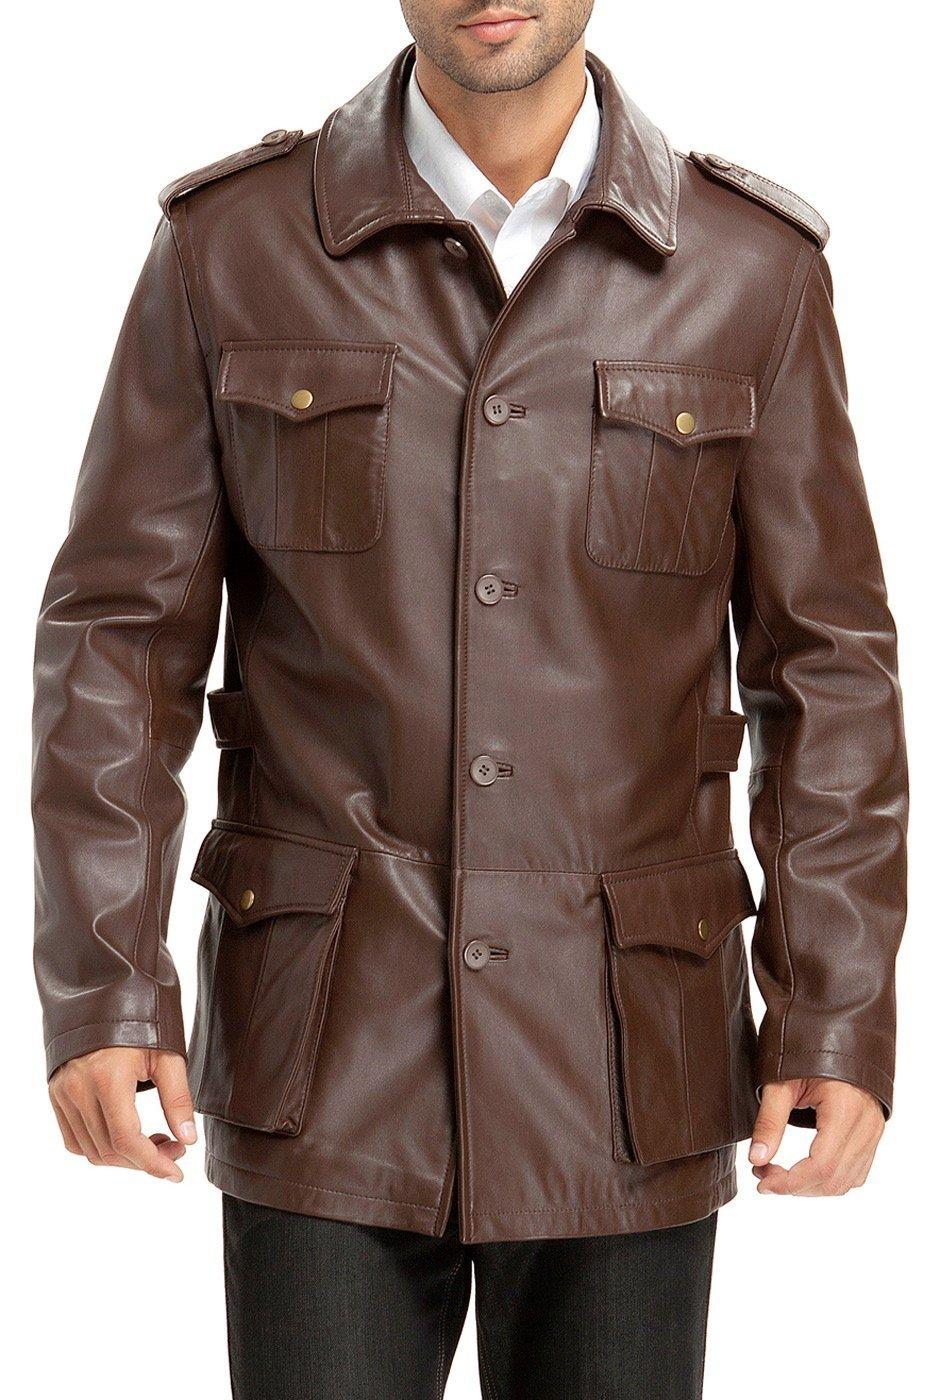 AsEstilo Store: LEATHER MILITARY JACKET FOR MEN